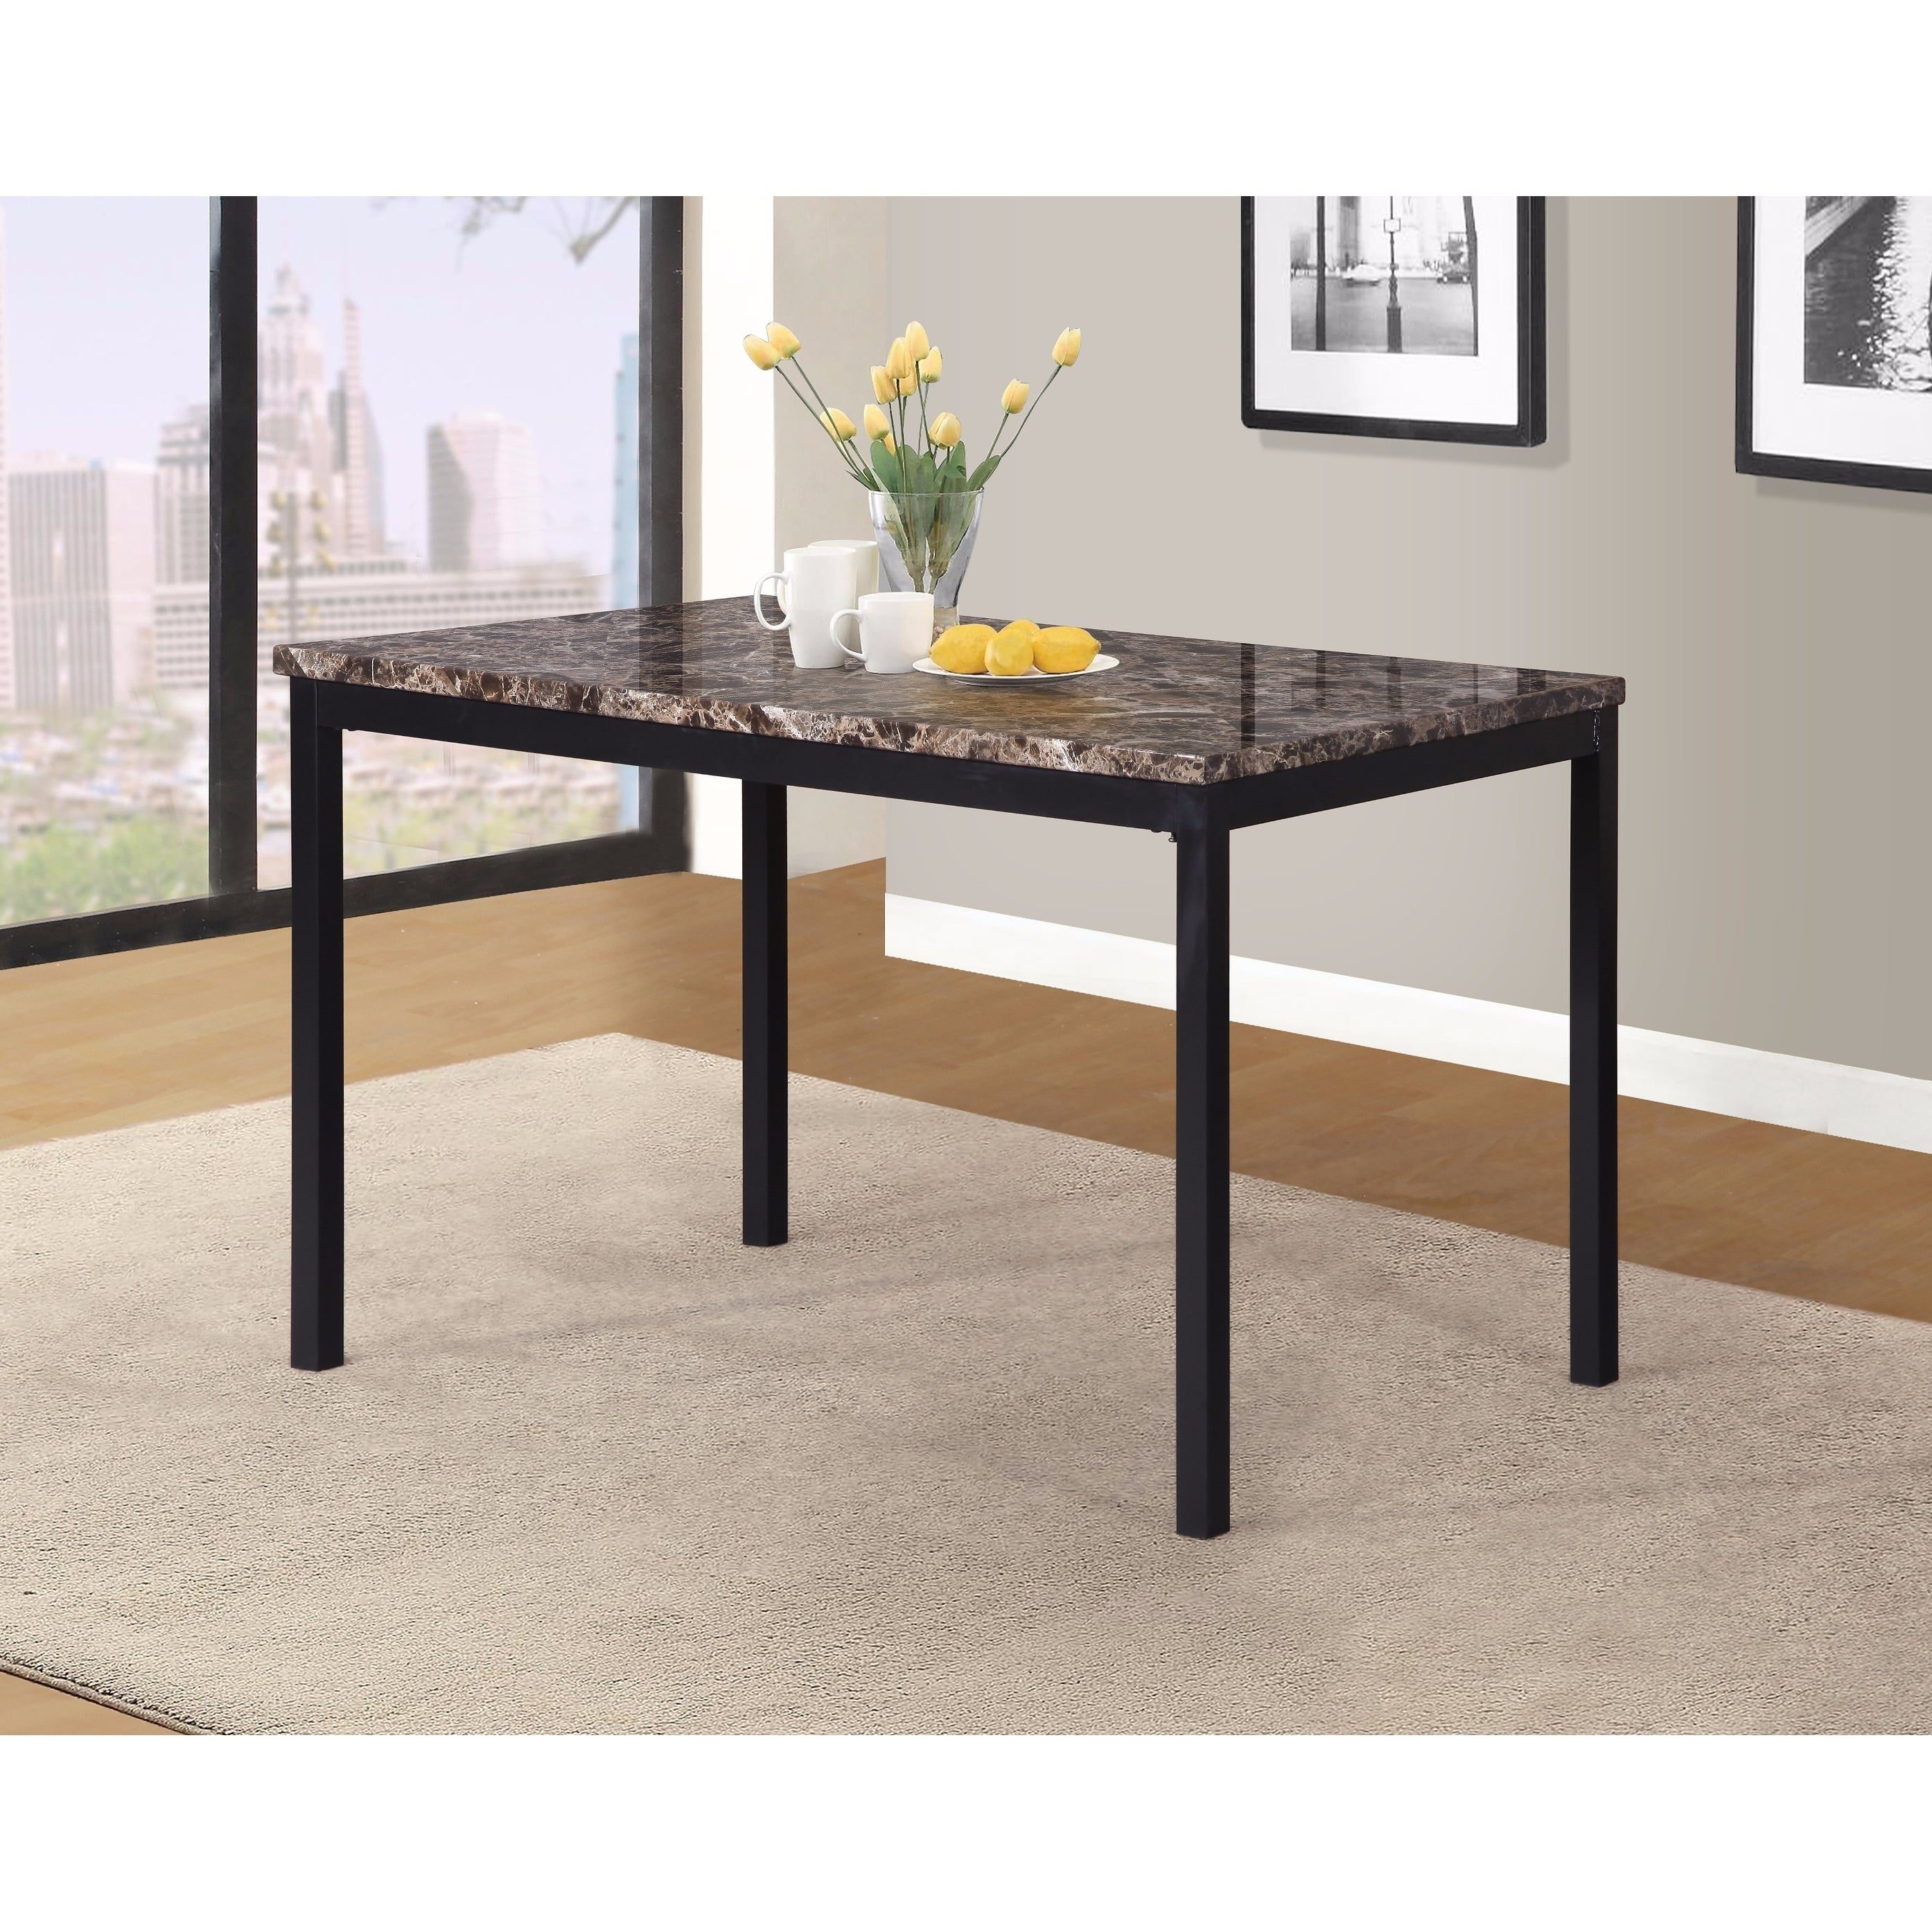 Shop noyes metal dining table with laminated faux marble top black free shipping today overstock com 18656834